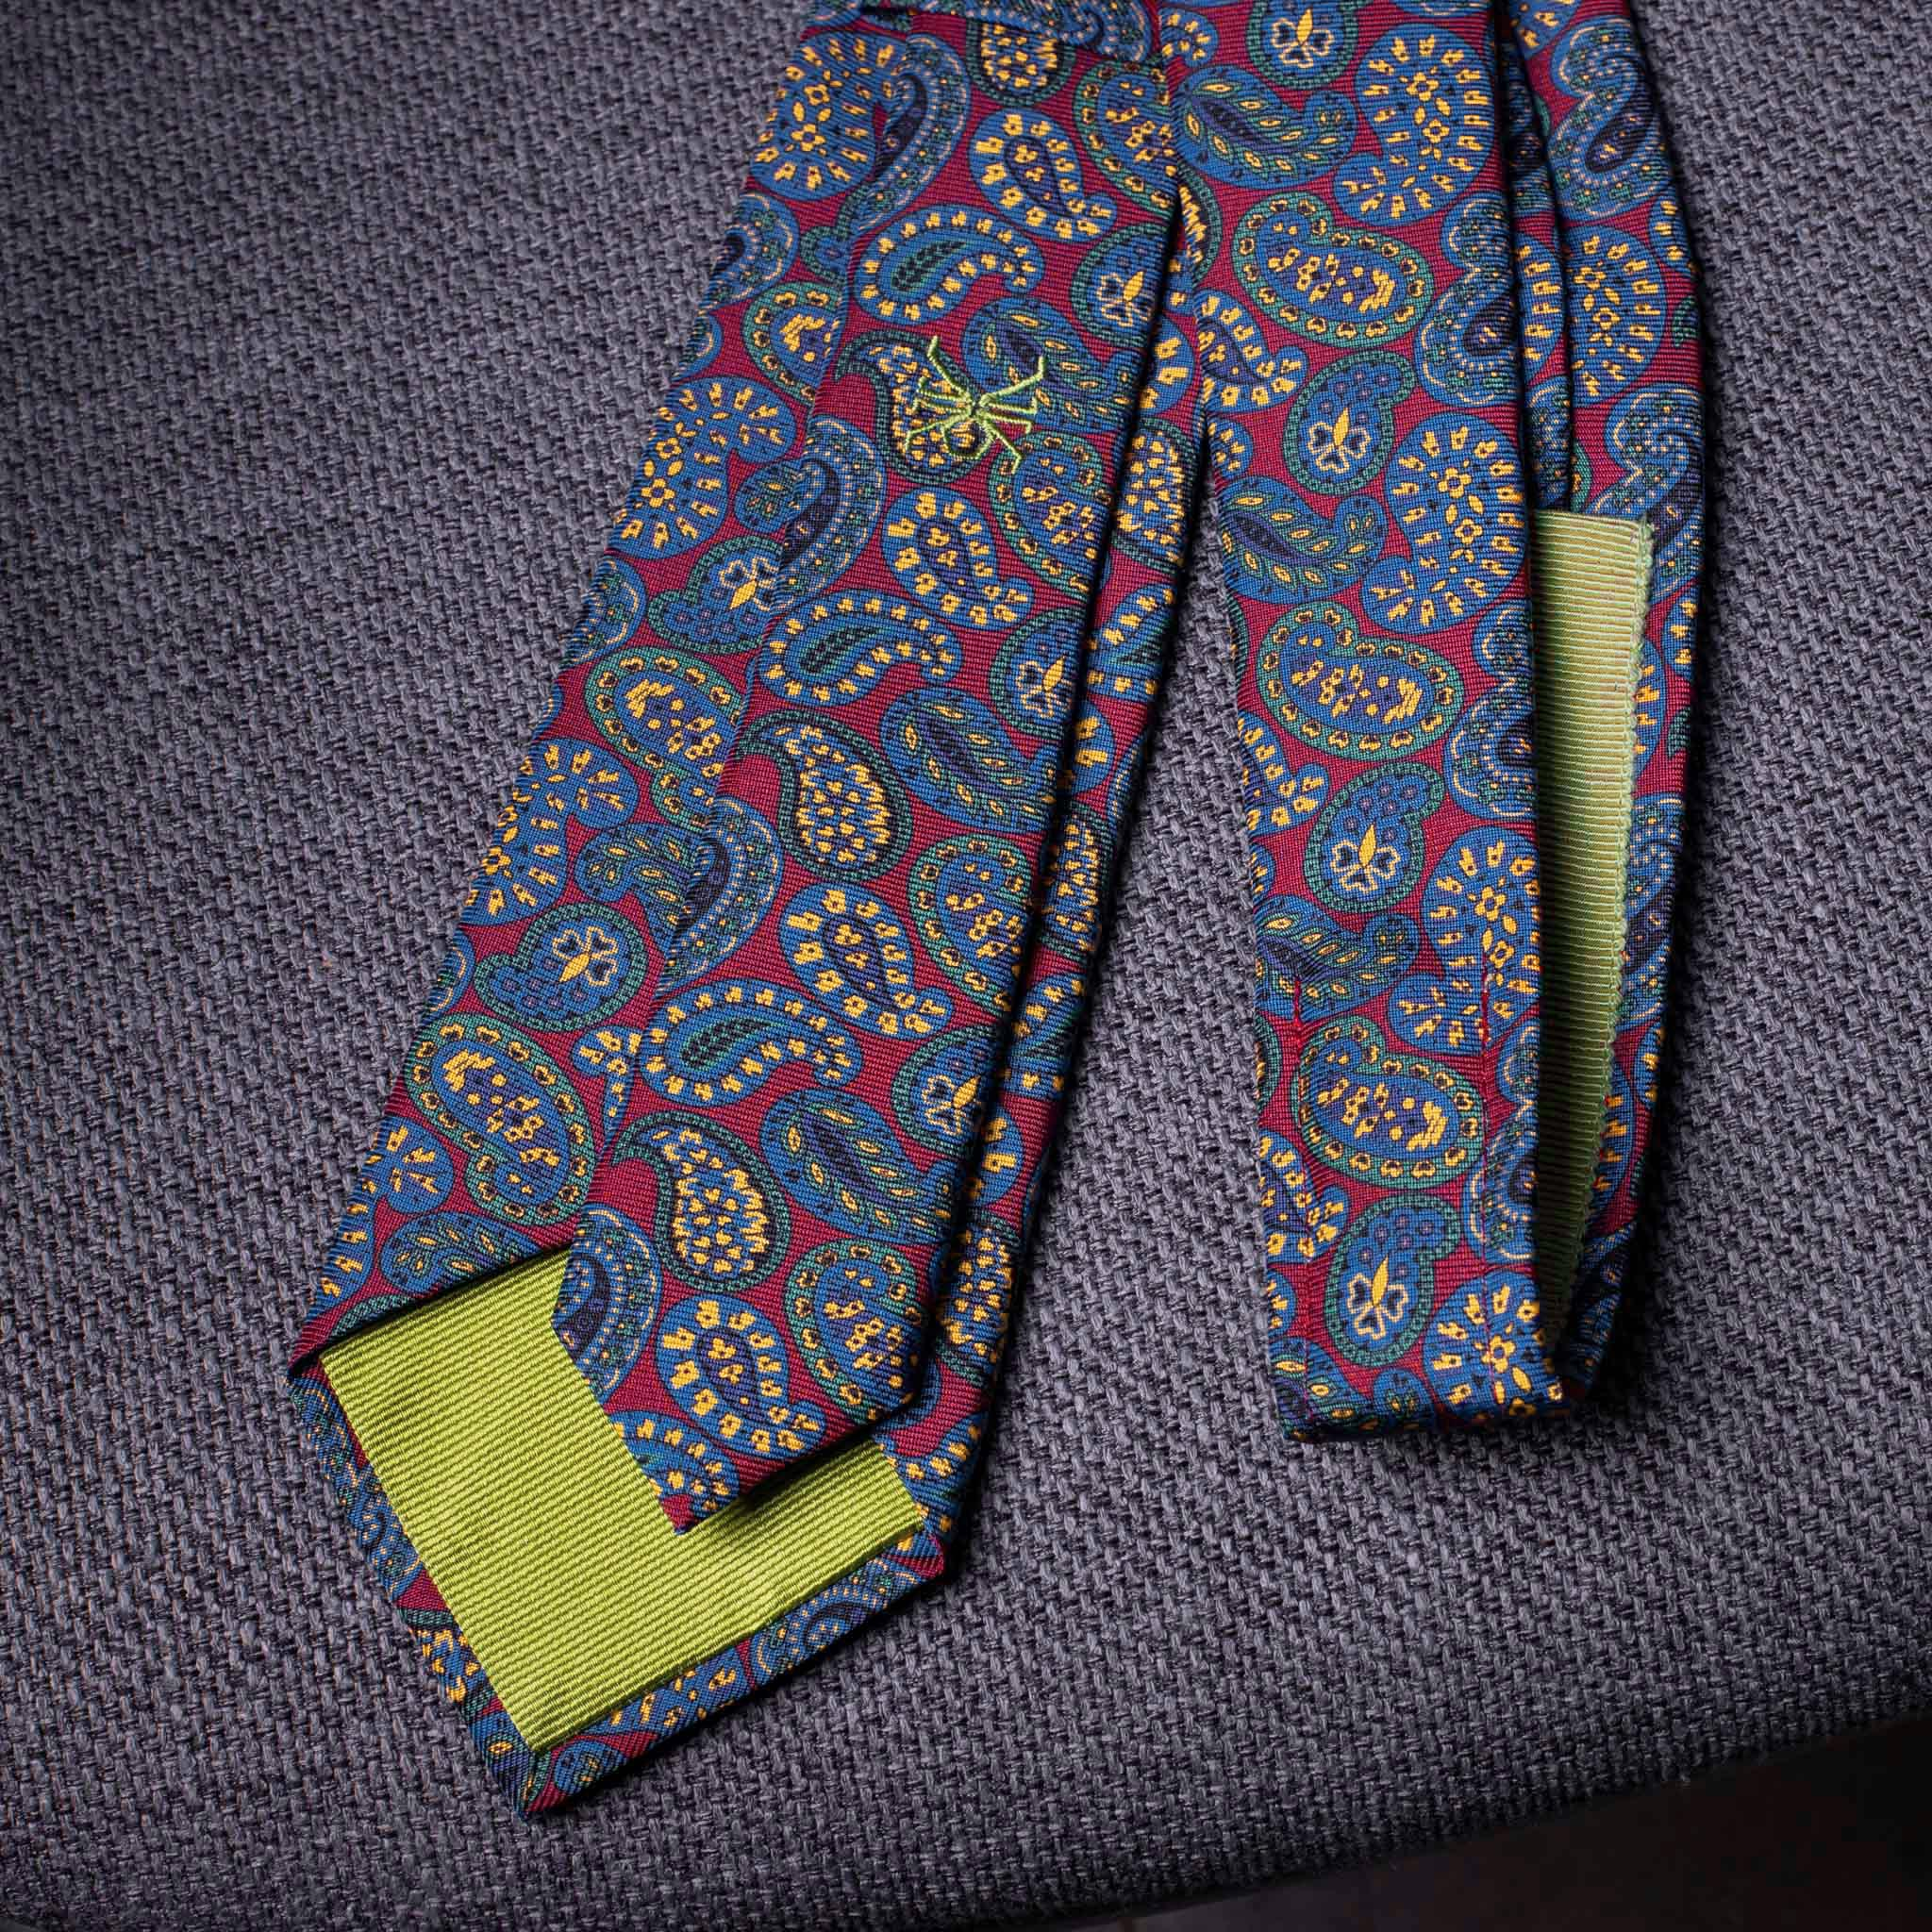 PRINTED SILK-0448-Tie-Initials-Corbata-Iniciales-The-Seelk-2